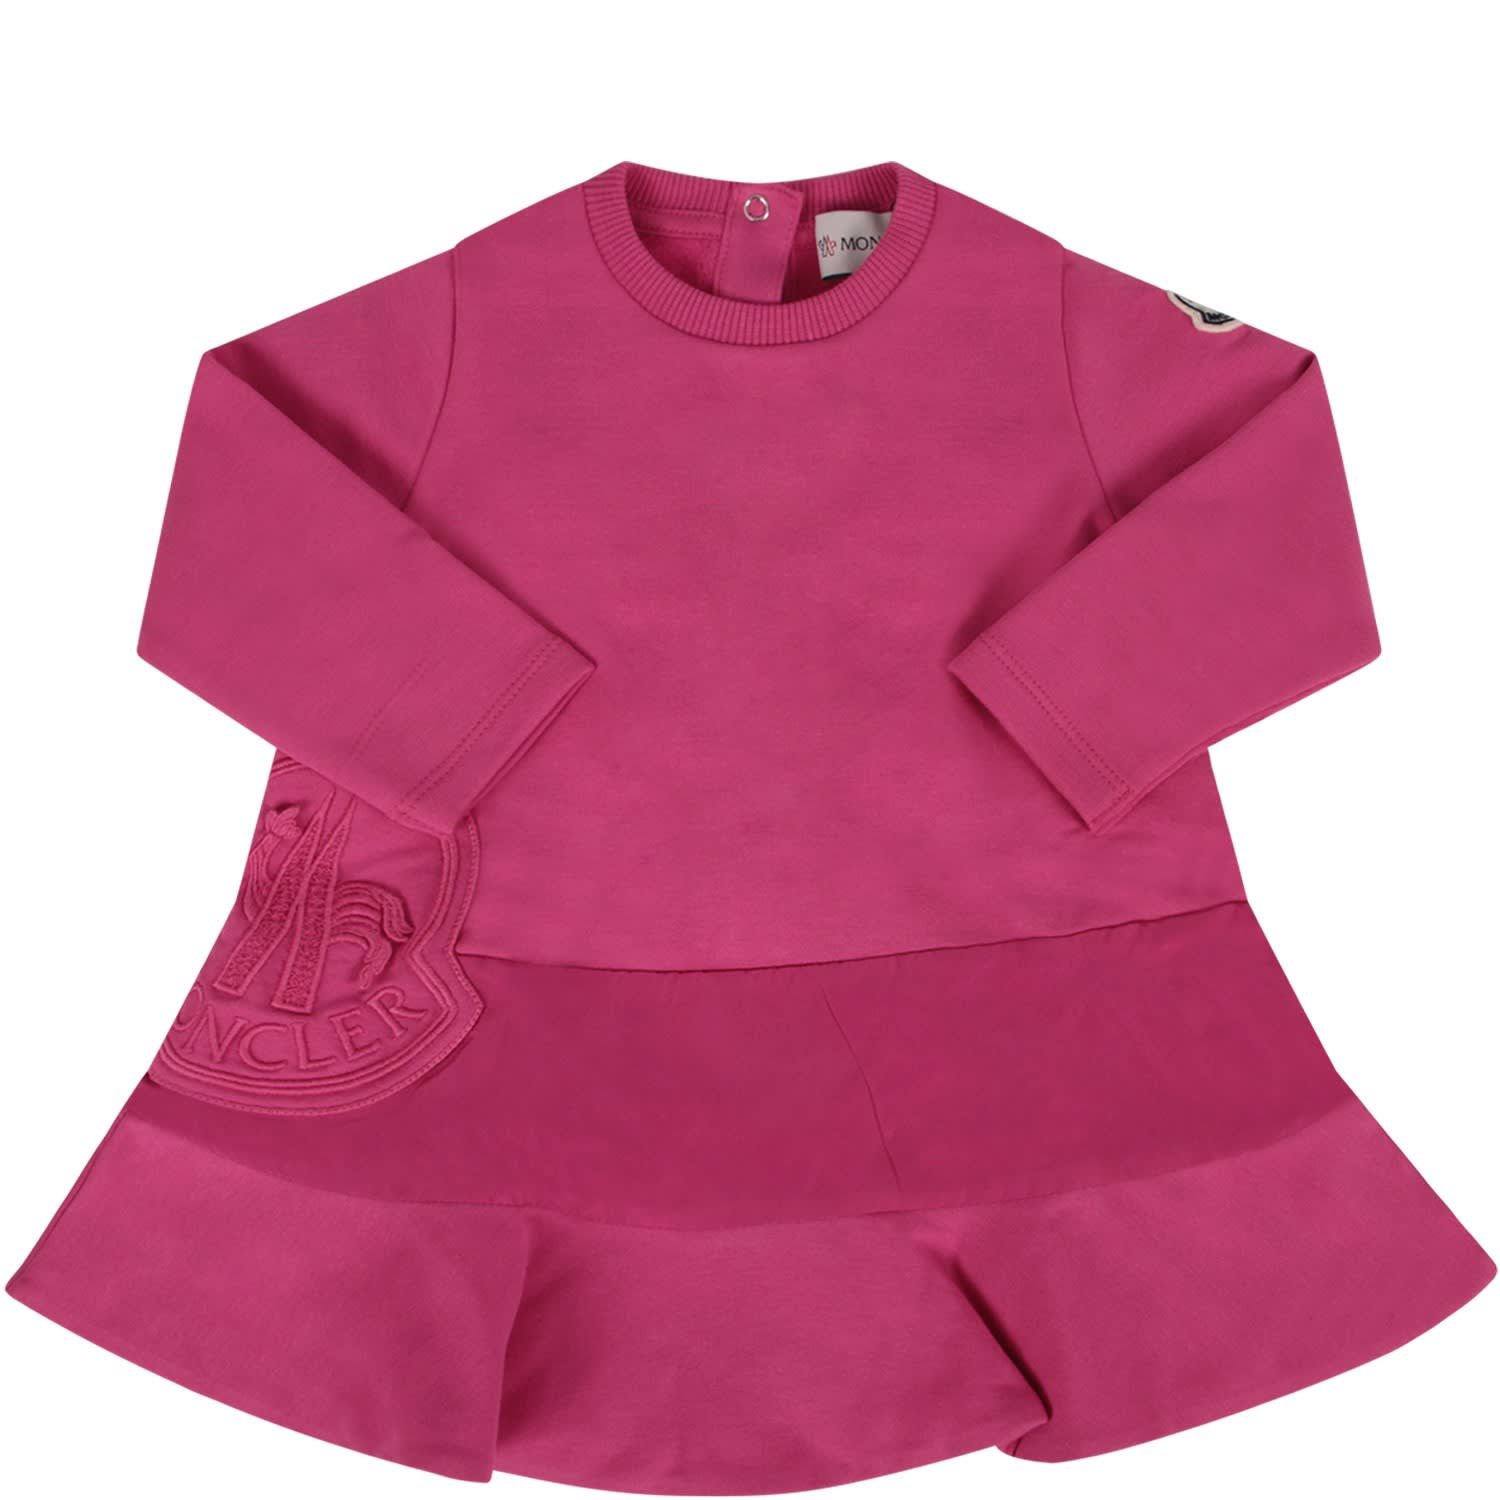 Moncler Fucshia Babygirl Dress With Iconic Patch